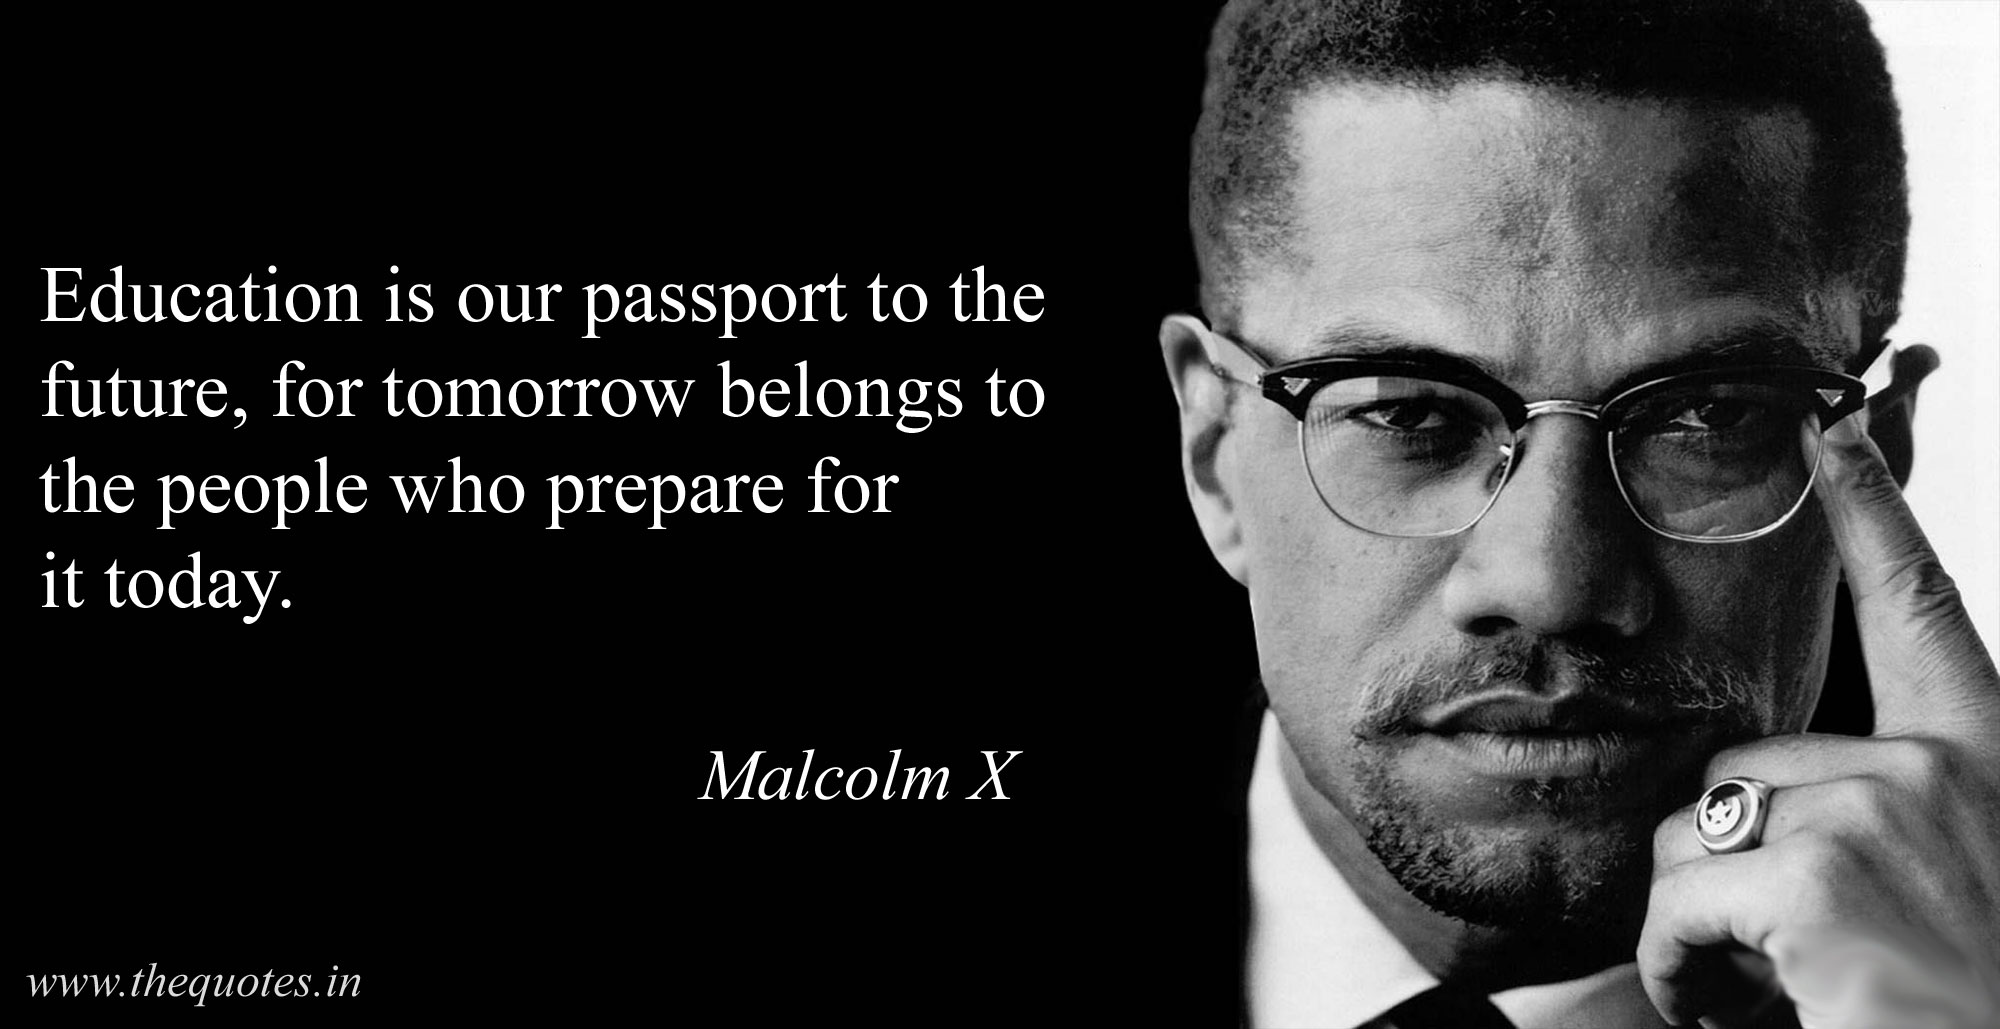 Malcolm-X-Quotes.jpg